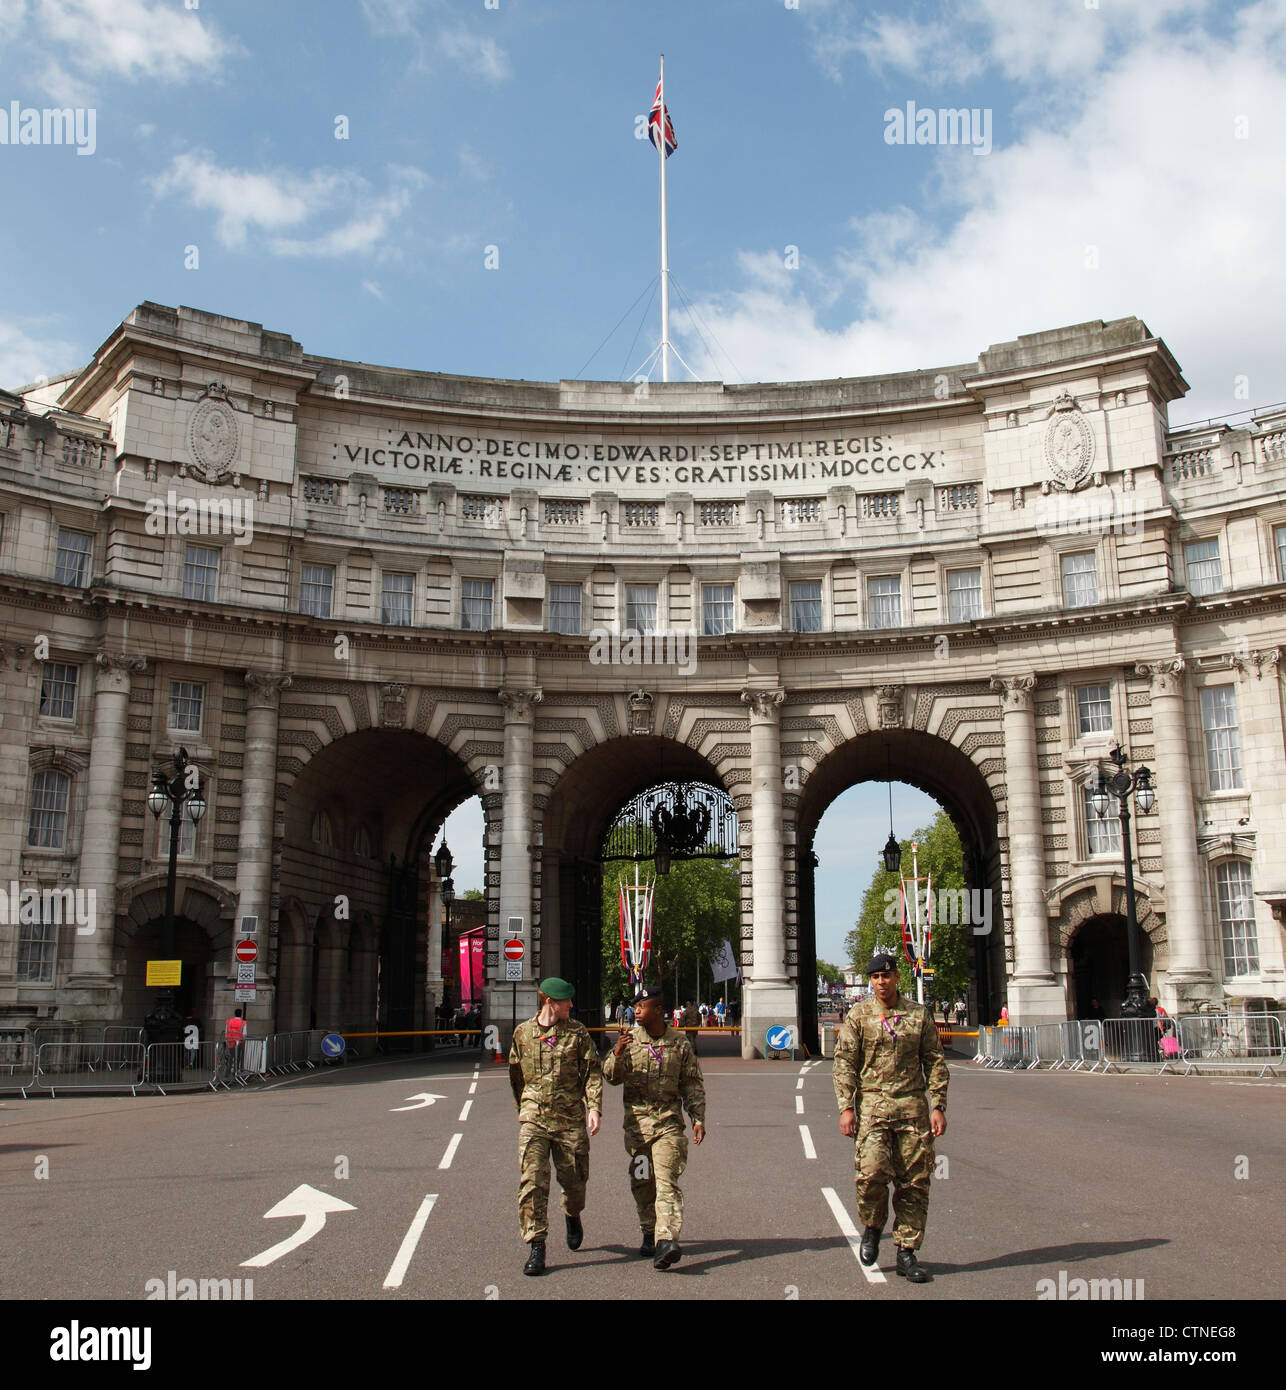 The British Army at Admiralty Arch for the London 2012 Olympic Games. - Stock Image